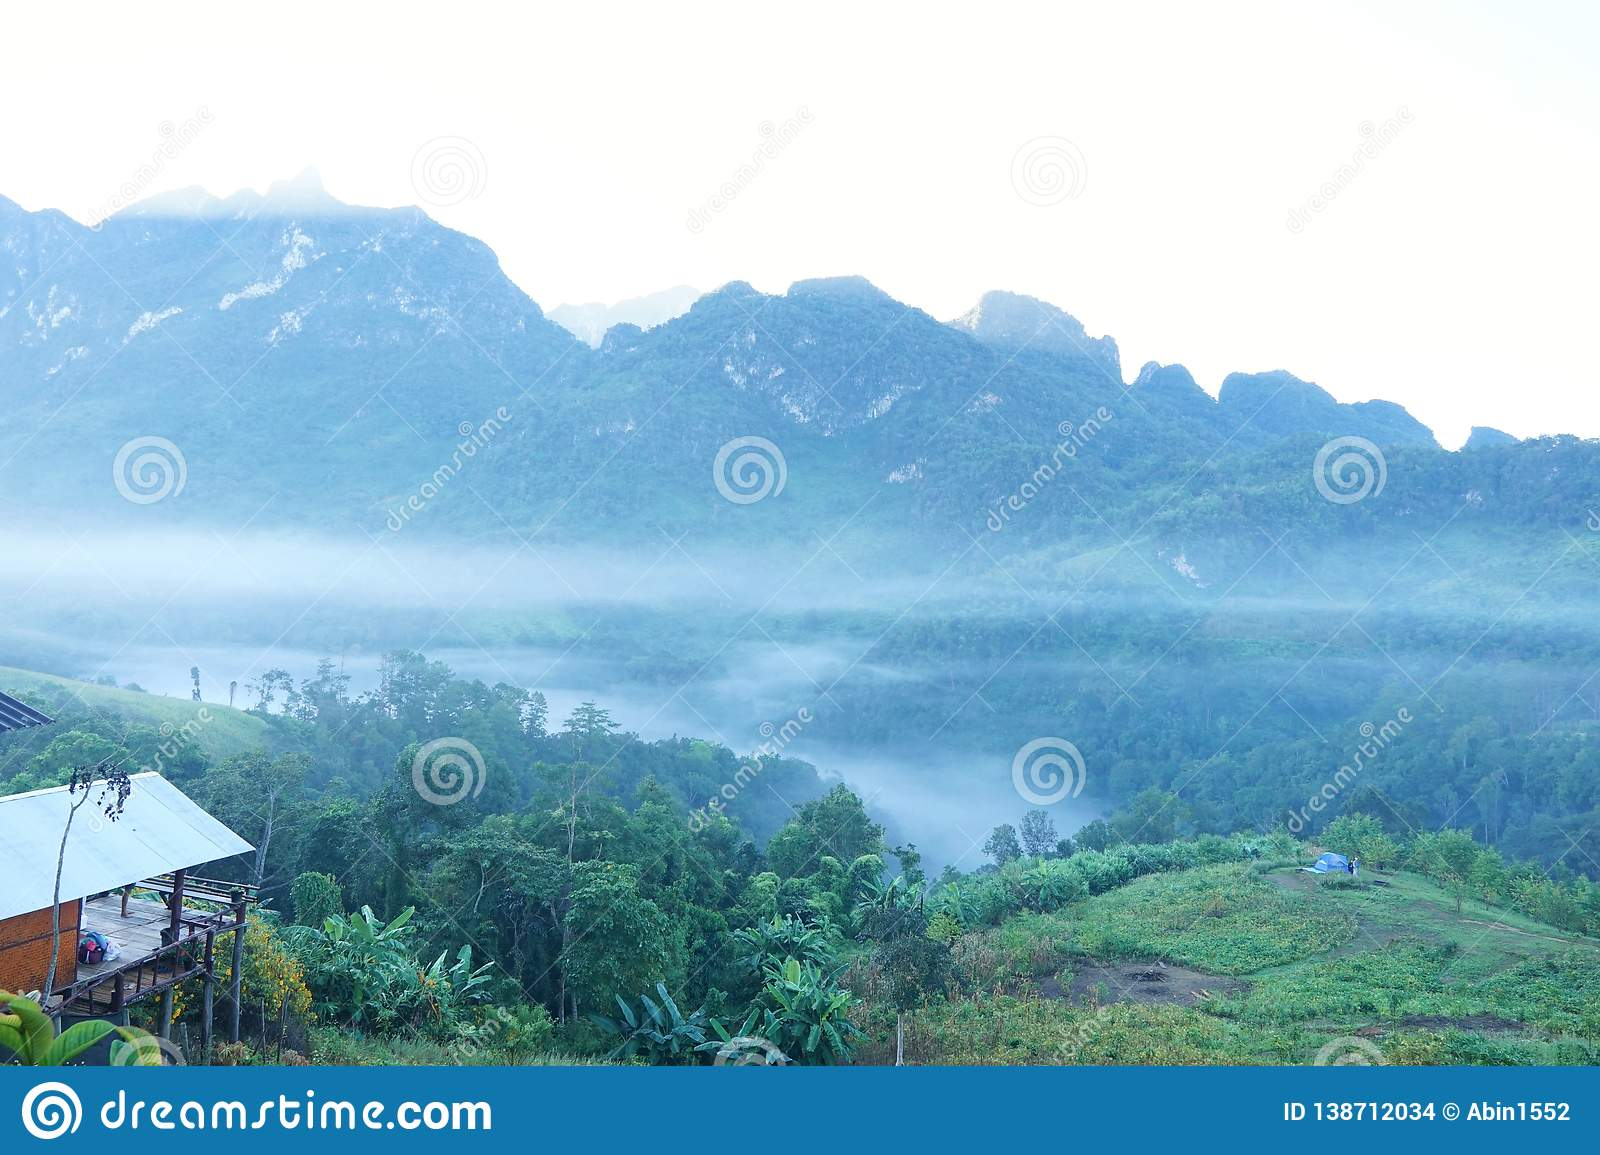 Fog in the morning at Doi Chiang Dao, Thailand, abundance evergreen forest and foggy